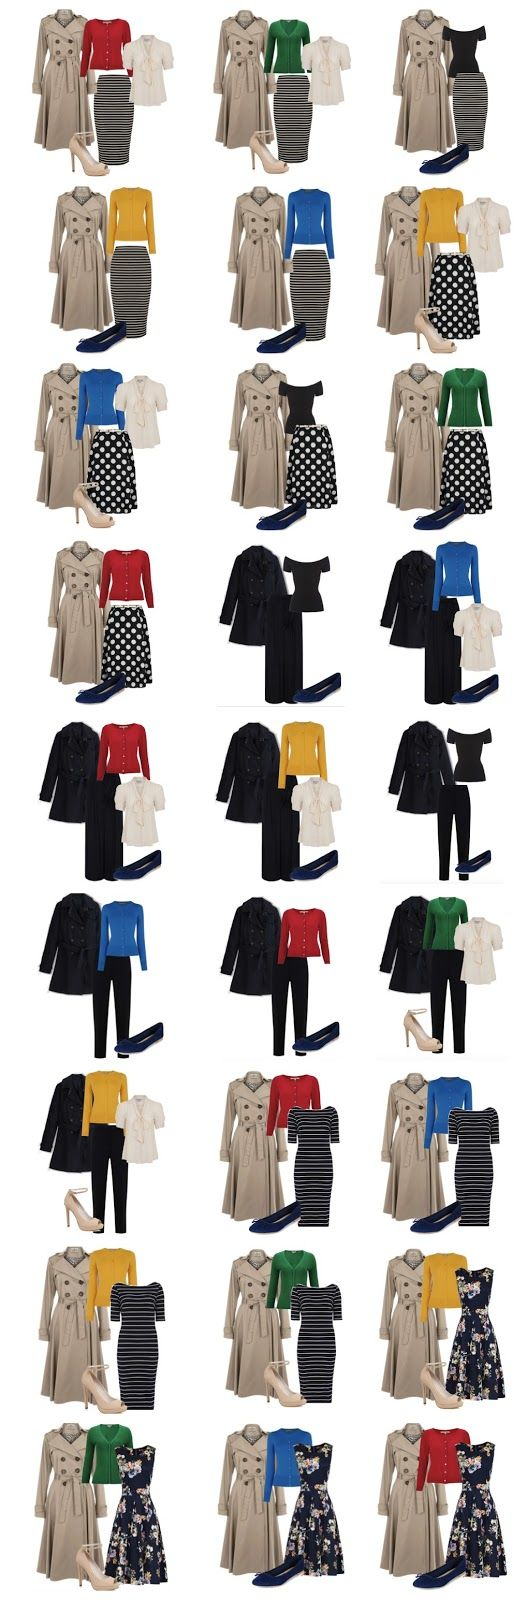 How to create and build a vintage and retro inspired capsule wardrobe for Spring. Vintage and retro style advice at www.vintagen.co.uk: